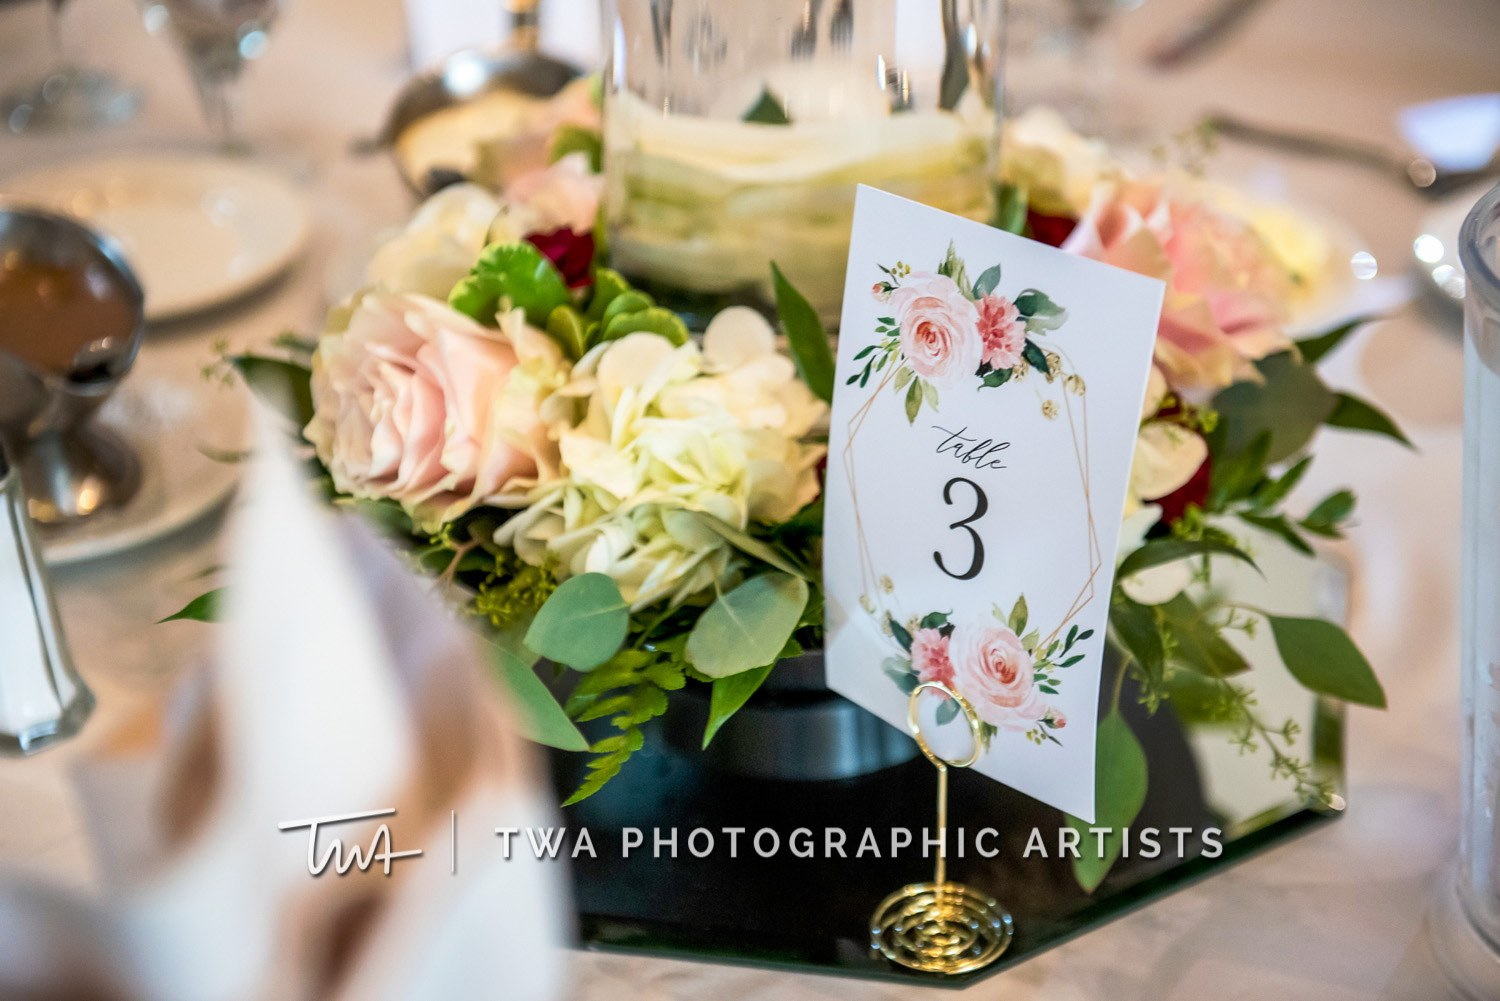 Chicago-Wedding-Photographer-TWA-Photographic-Artists-White-Pines-Banquets_Petersen_Sherman_ZZ_DL-059_0575